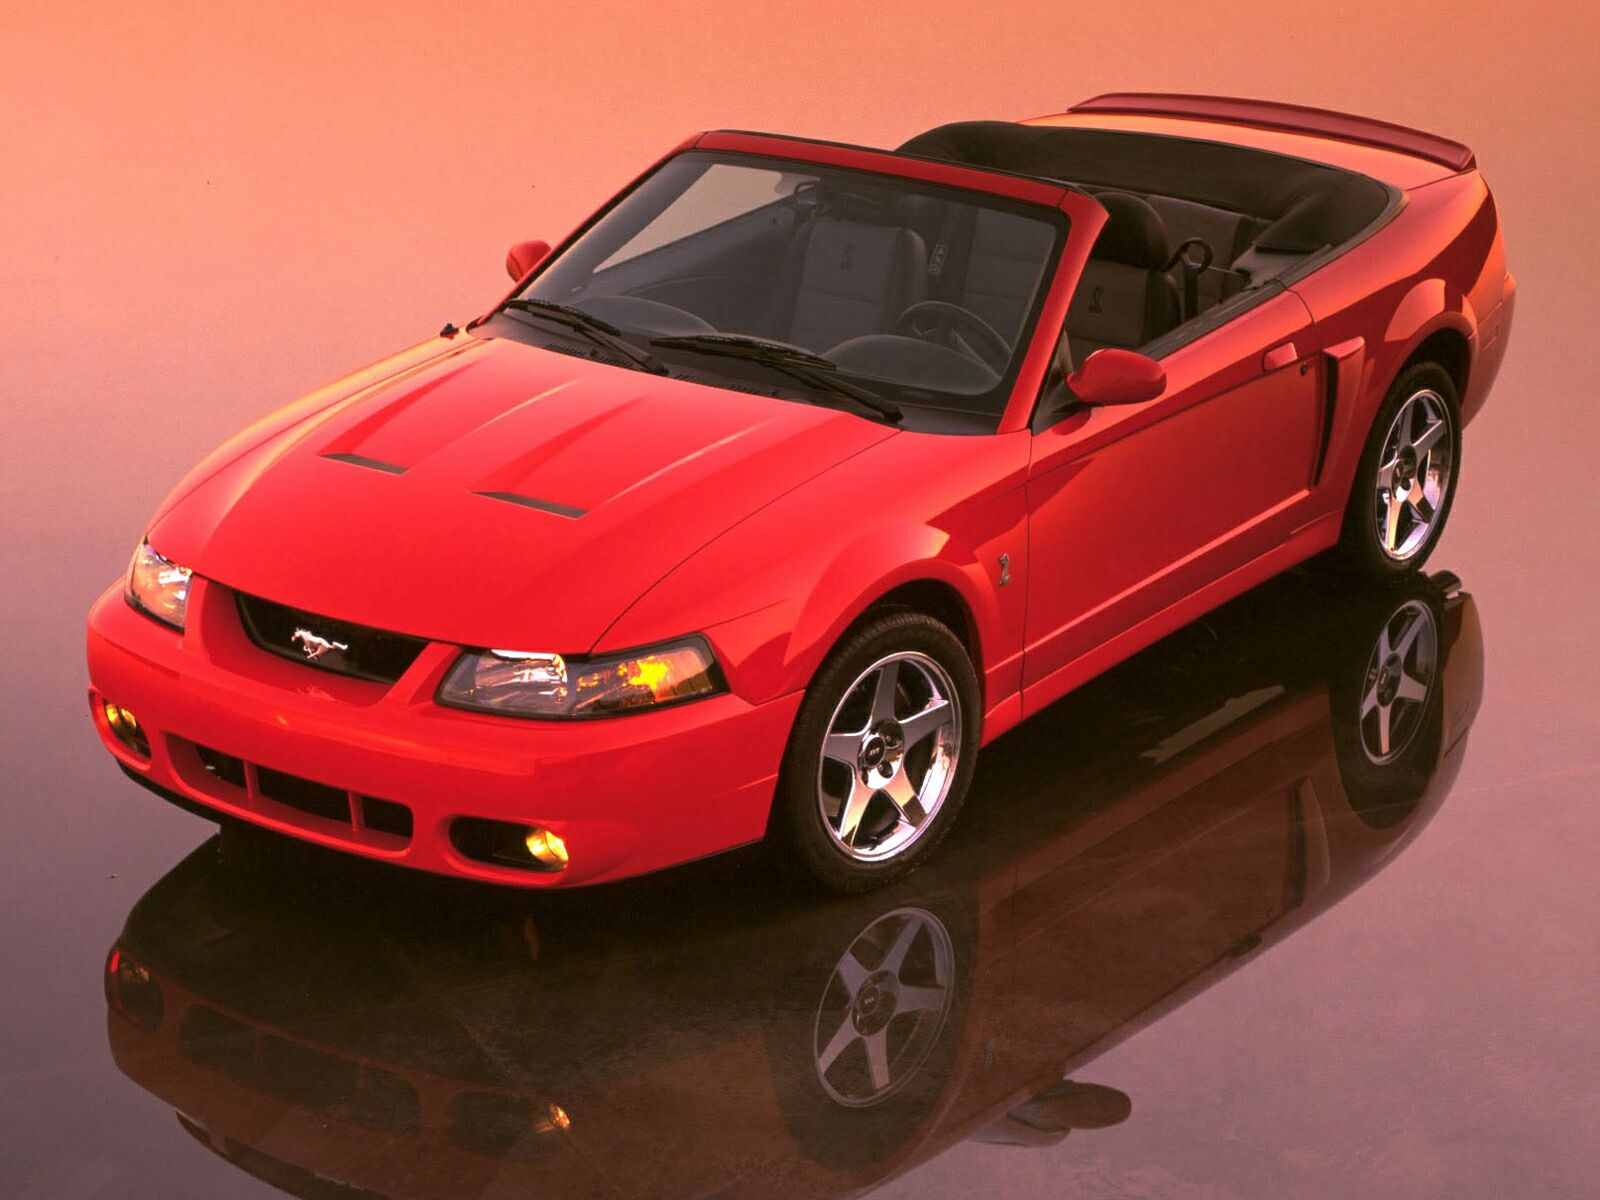 Ford Mustang Cobra photo 10616